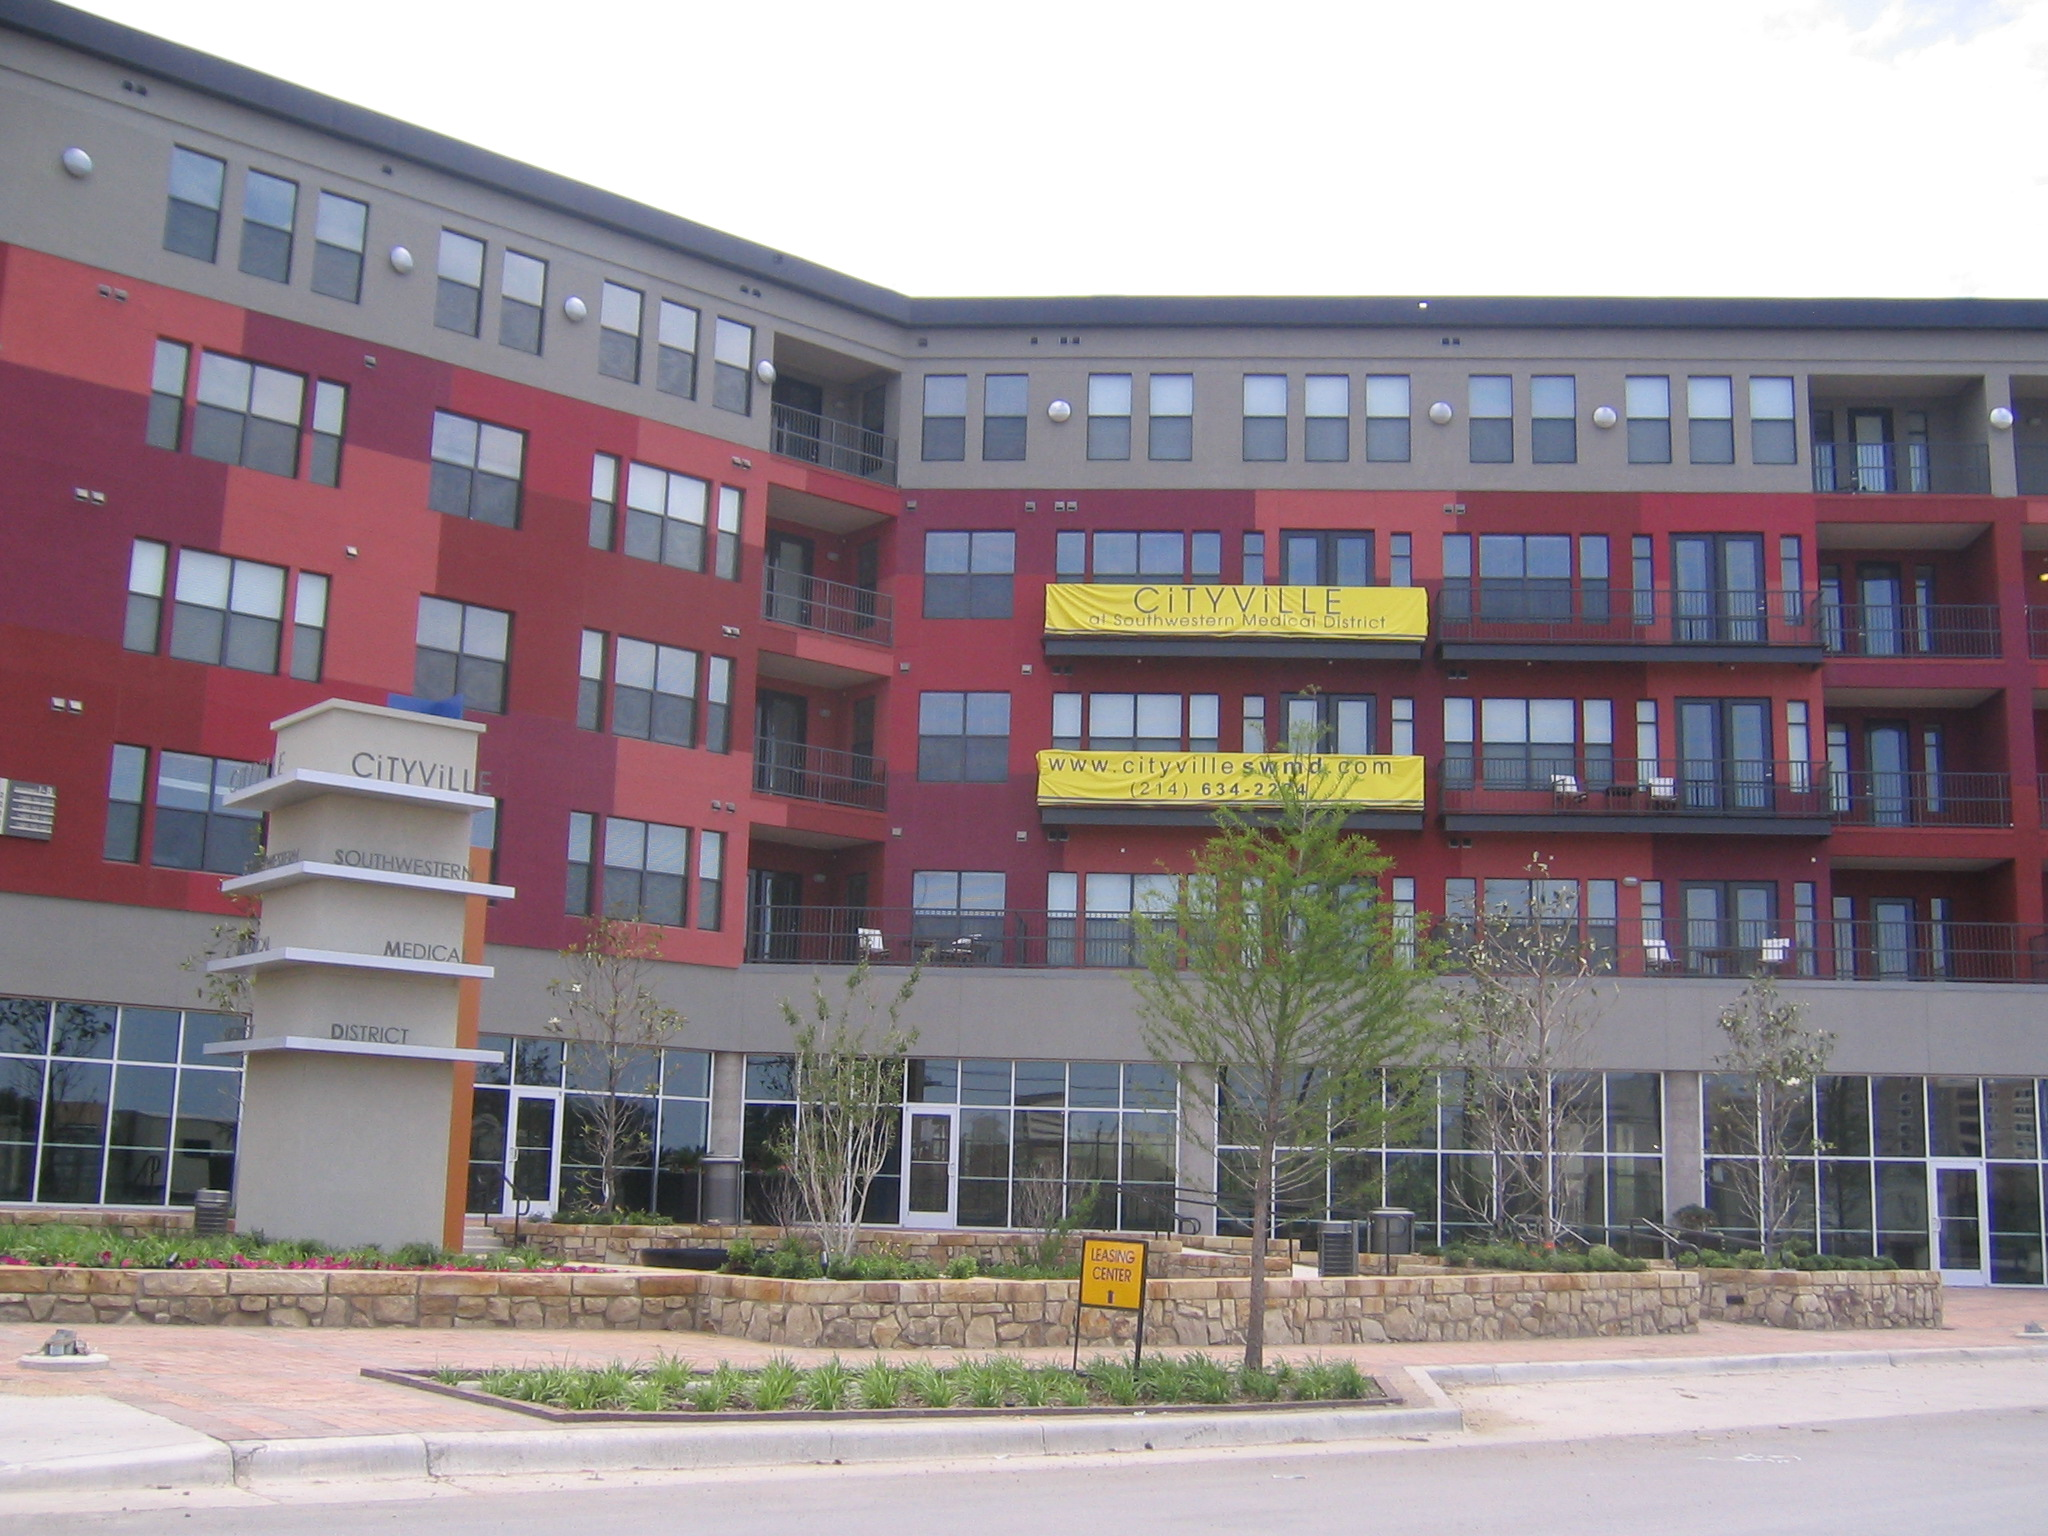 Cityville at Southwestern Medical District